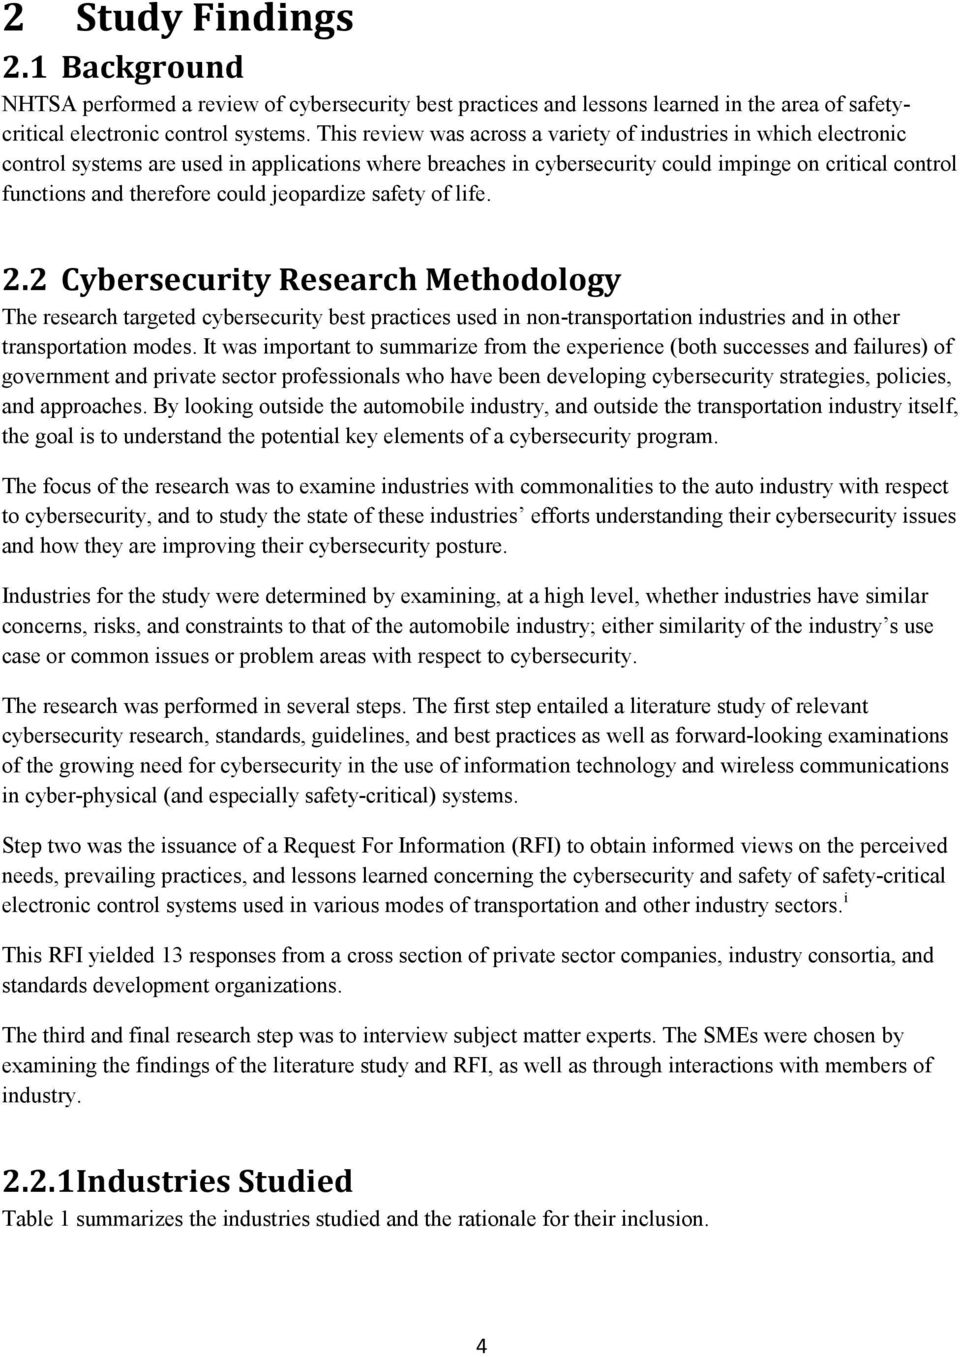 could jeopardize safety of life. 2.2 Cybersecurity Research Methodology The research targeted cybersecurity best practices used in non-transportation industries and in other transportation modes.